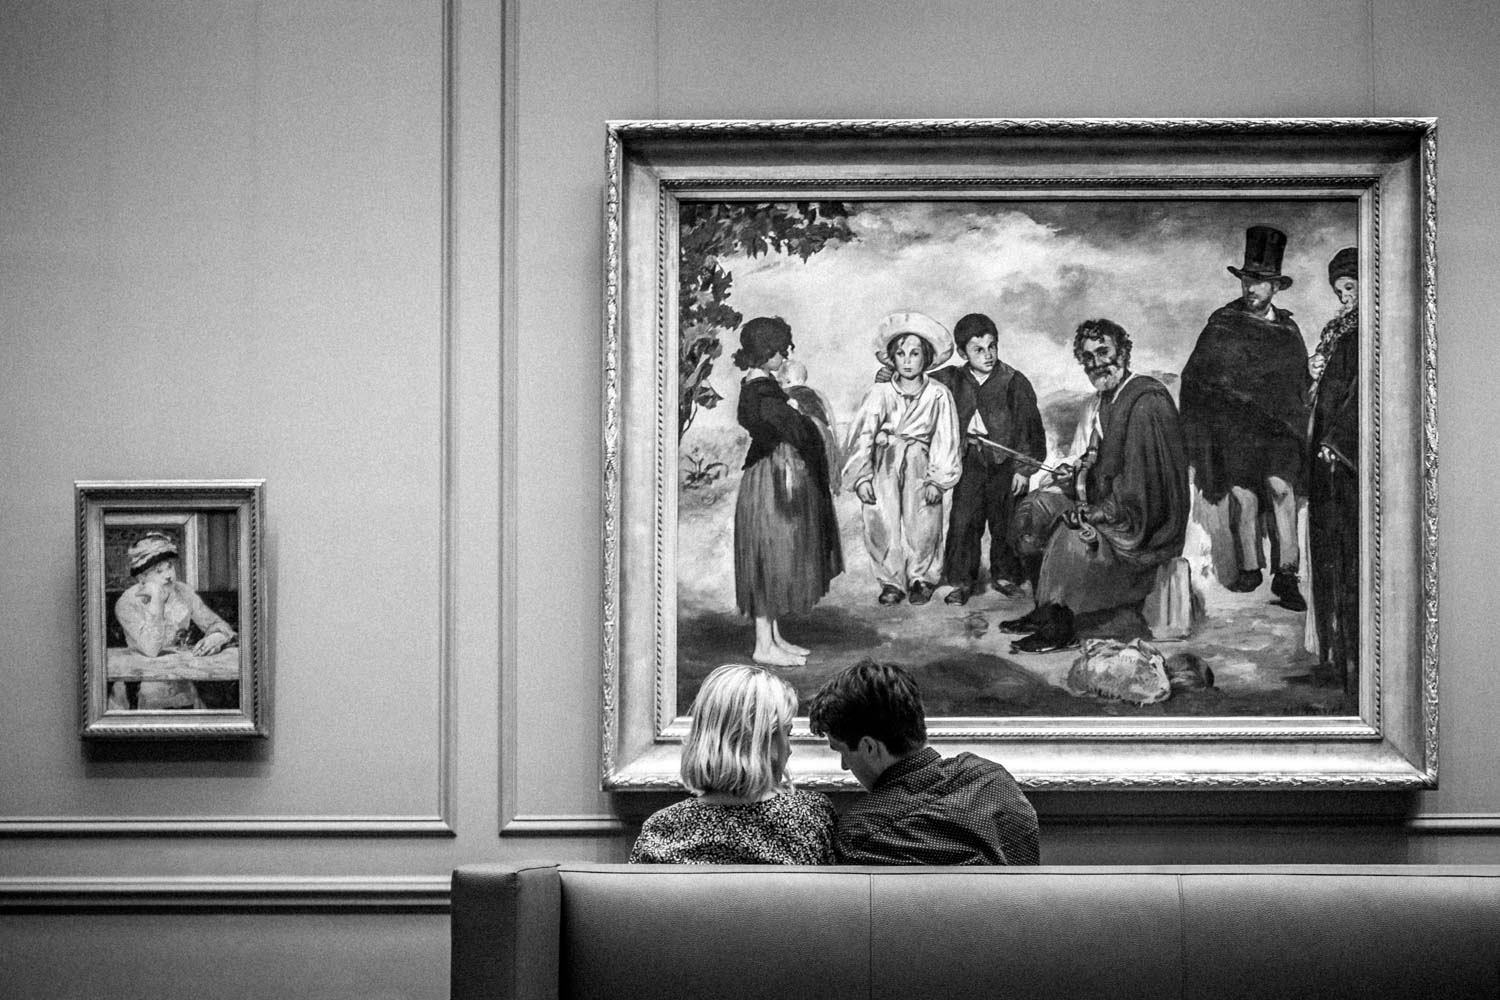 A Couple at the D.C. National Gallery of Art Being Observed by the Art